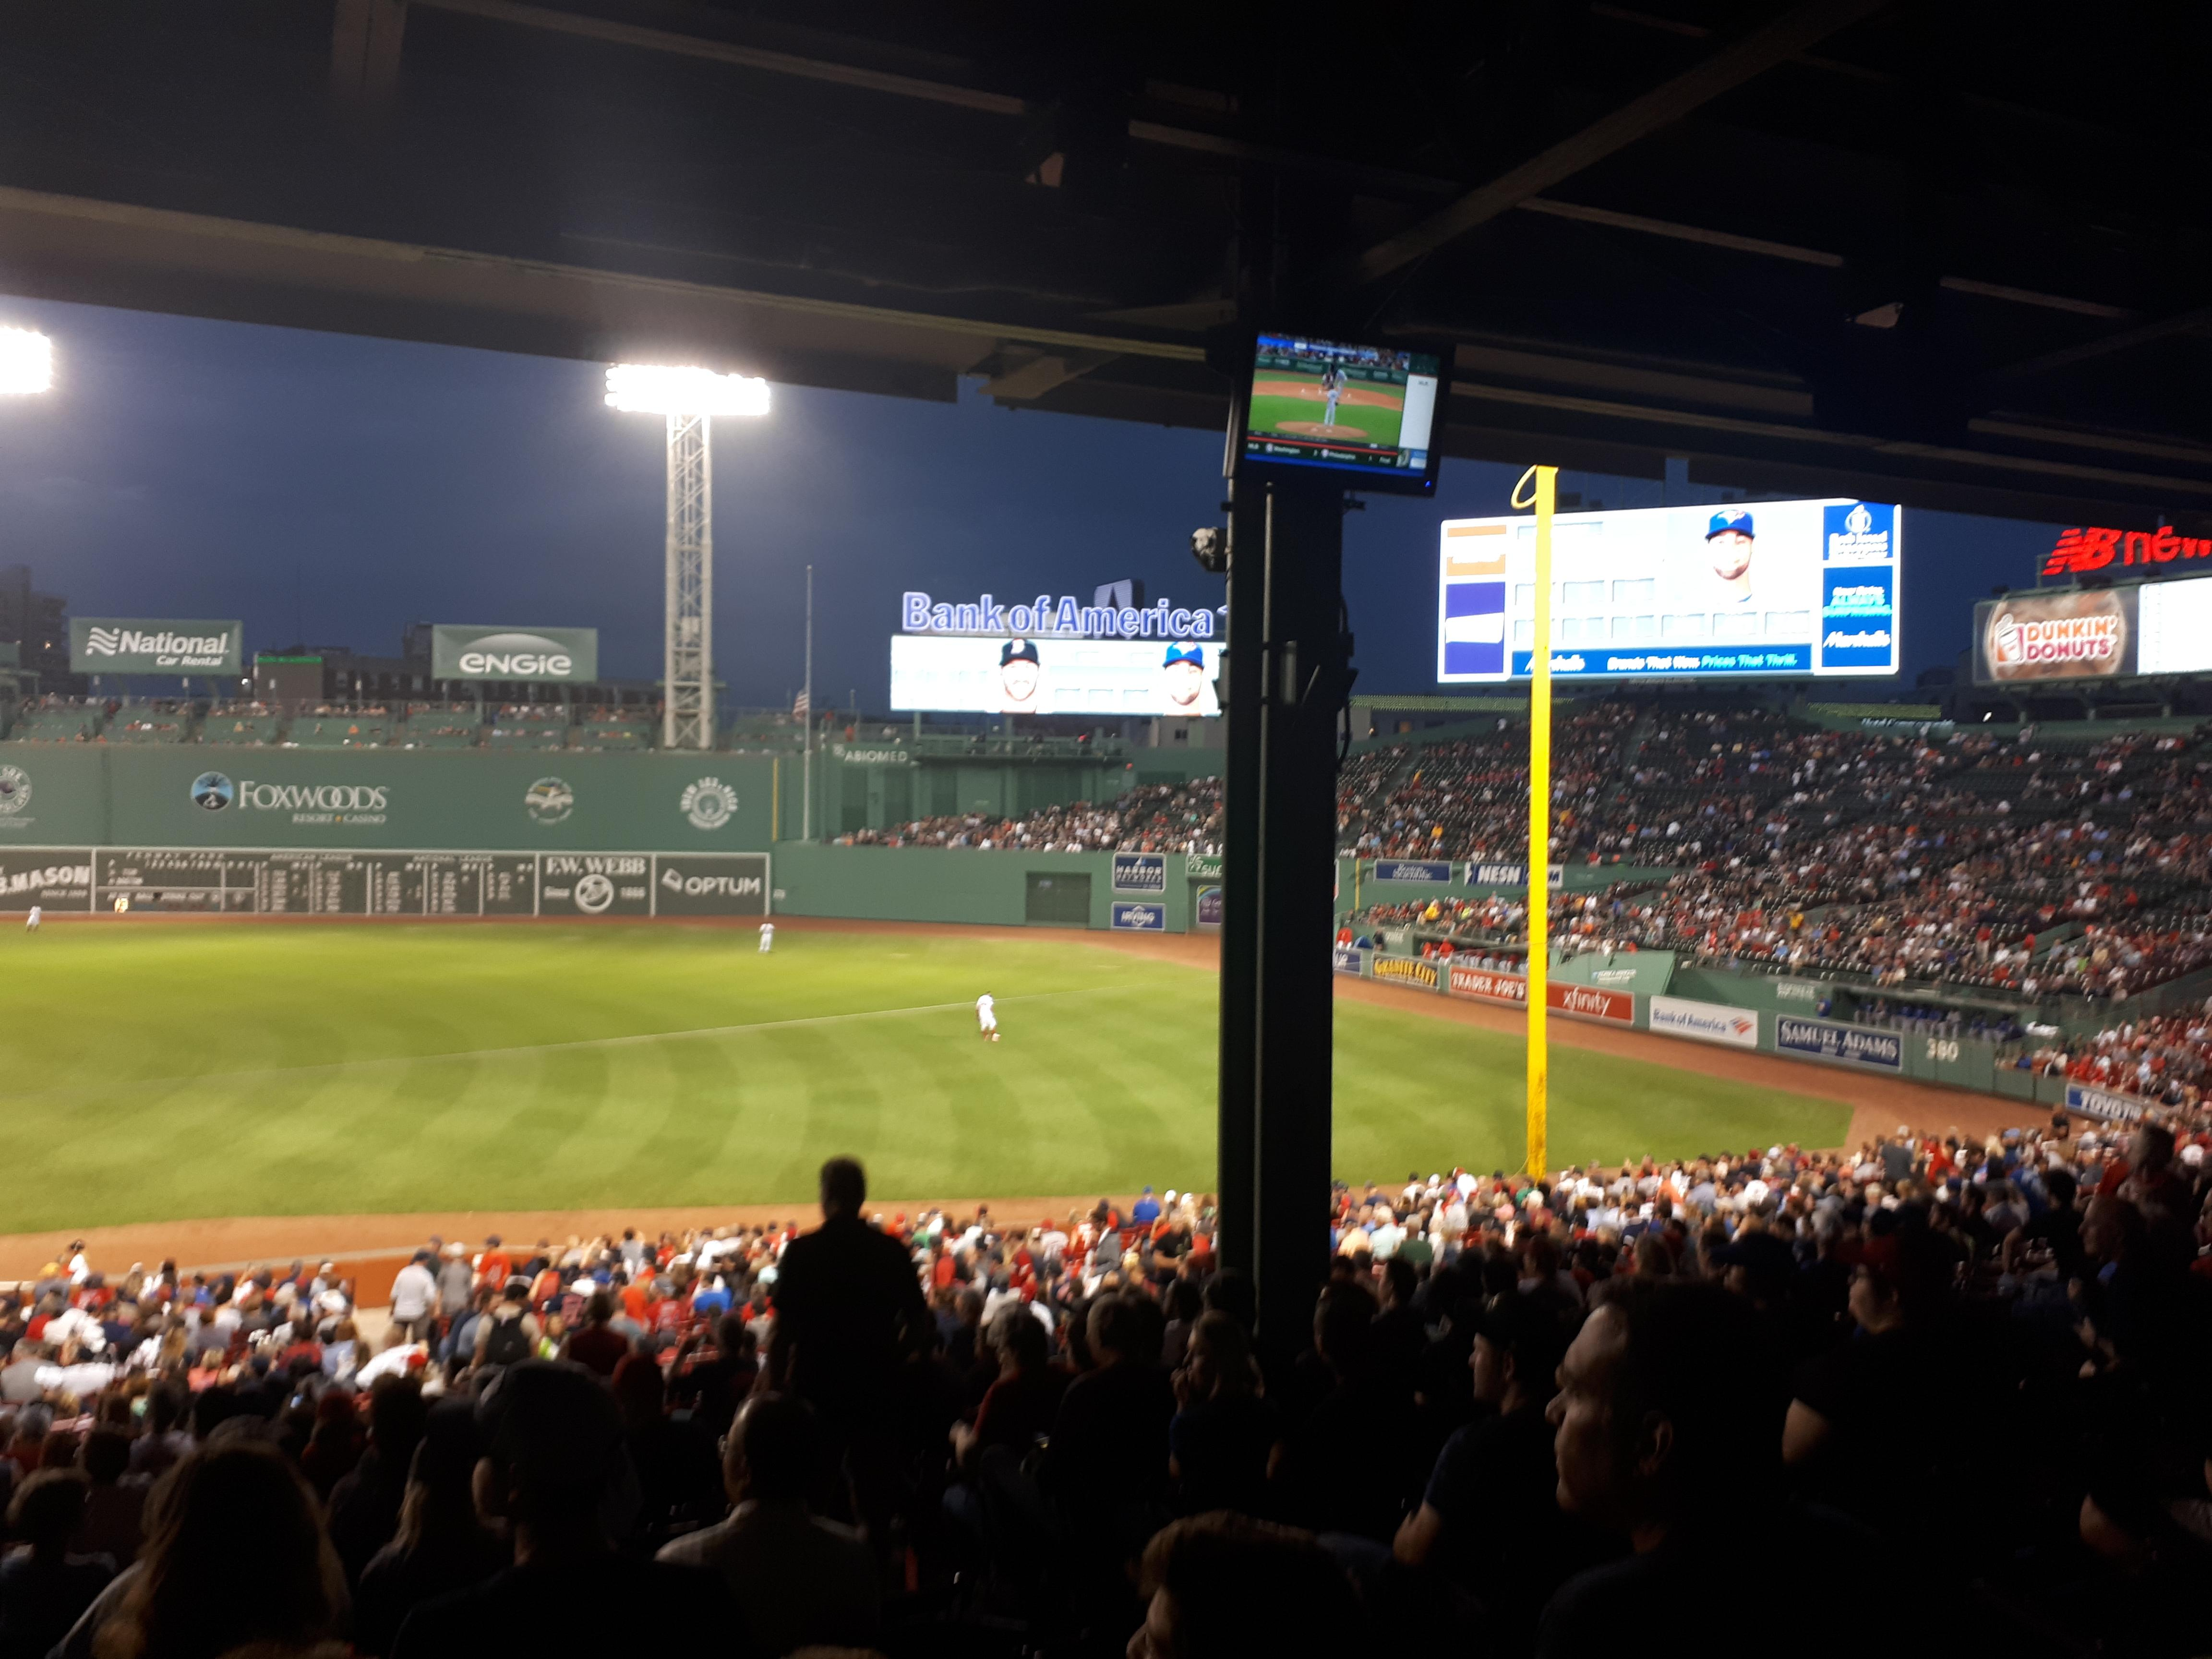 Fenway Park is home of the famed Boston Red Sox